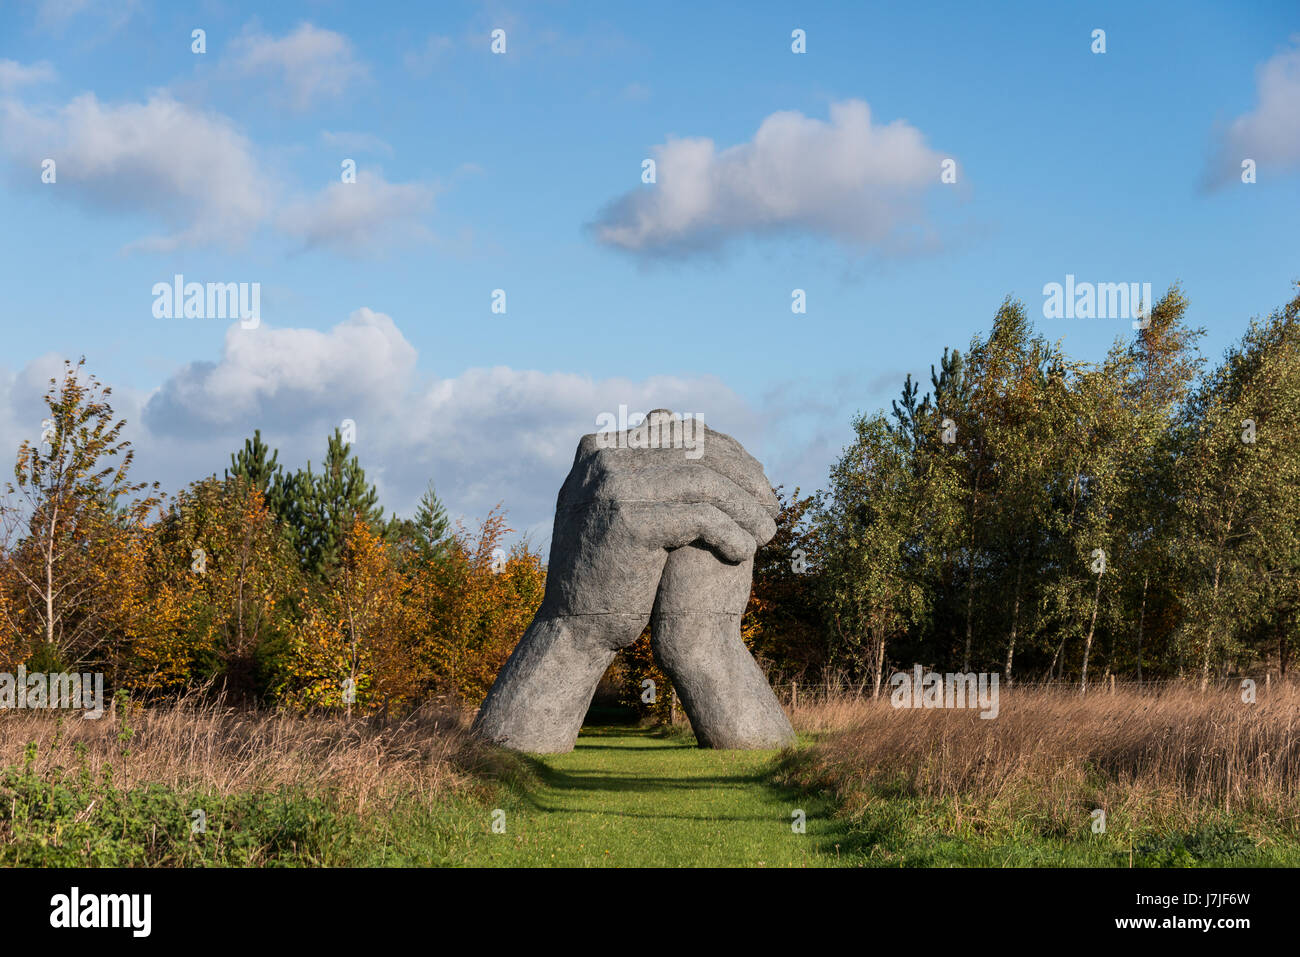 Large pair of hands sculpted by Sophie ryder - Stock Image